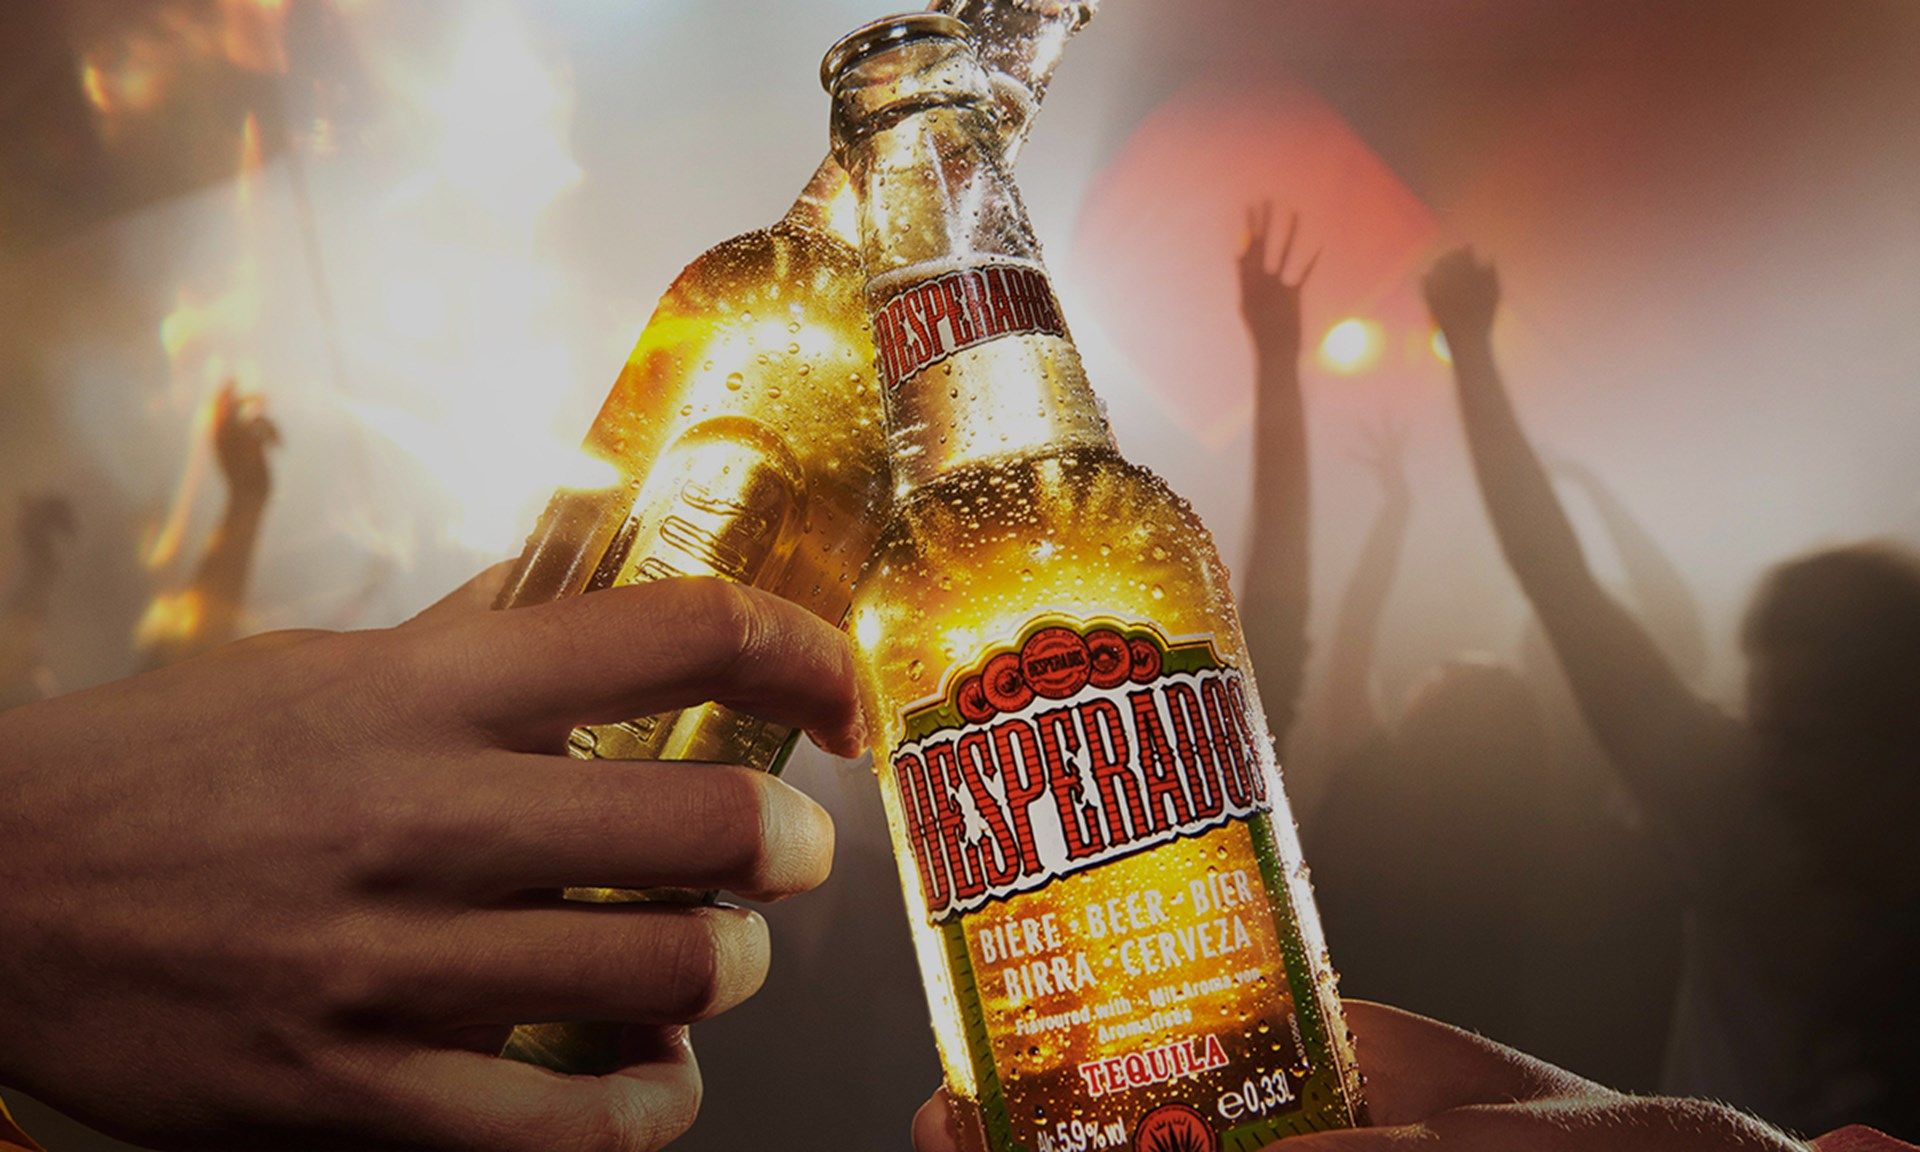 Desperados Beer Is A Full Bodied Lager Flavoured With Tequila A Kick Of The Unexpected In 2020 Beer Flyer Desperado Beer Corona Beer